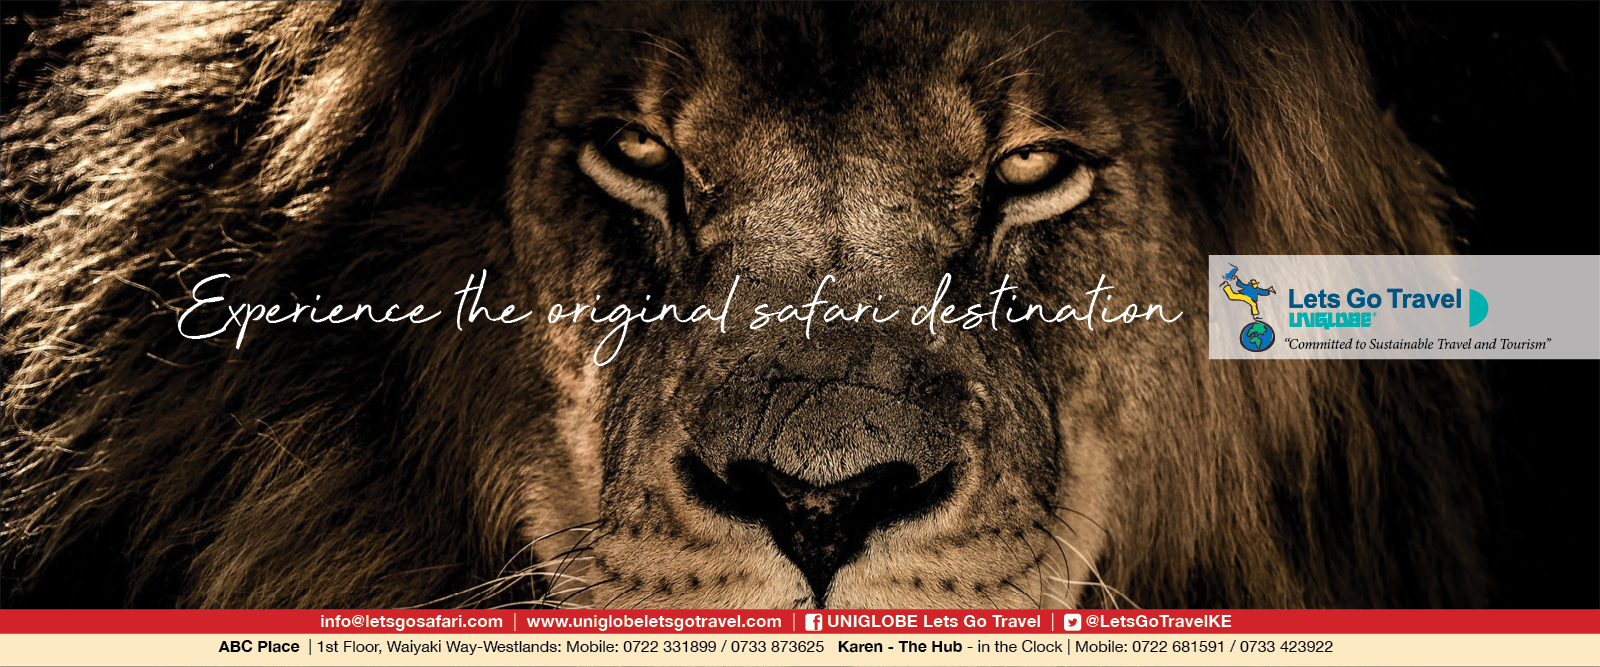 Lets Go Travel - THE safari specialist across East Africa!